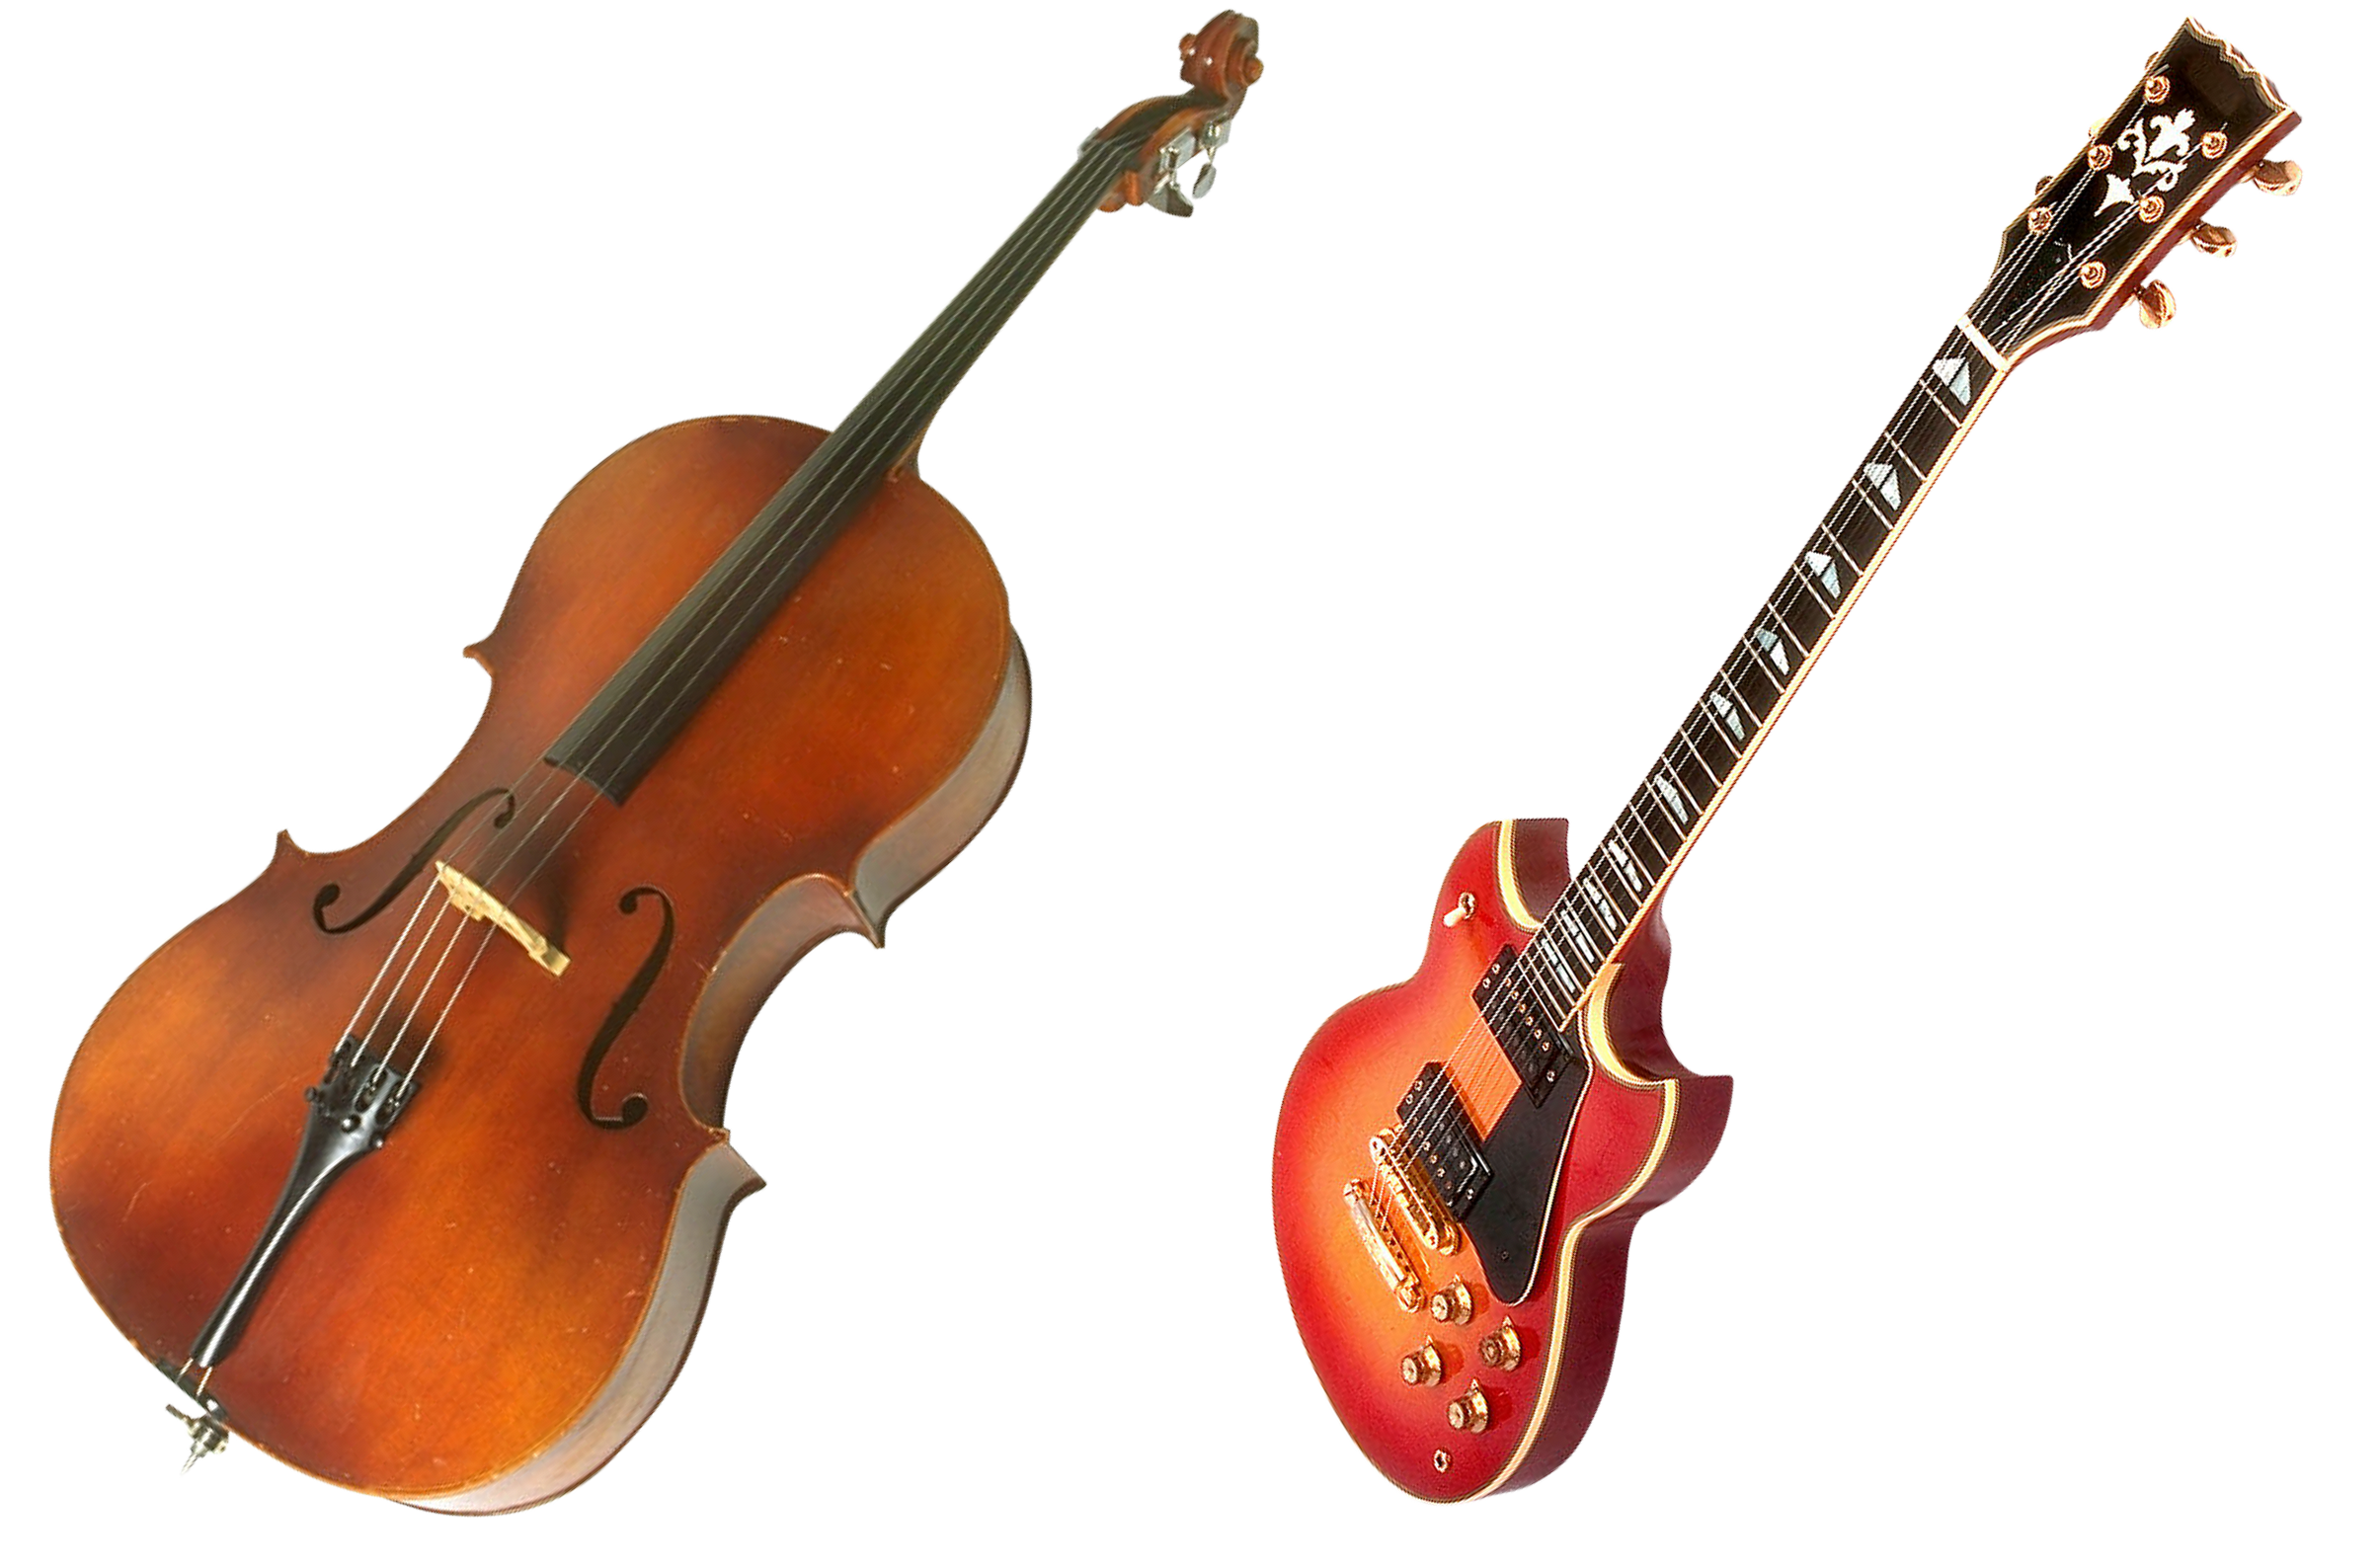 Violin and Guitar, Guitar, Instrument, Music, Musical, HQ Photo